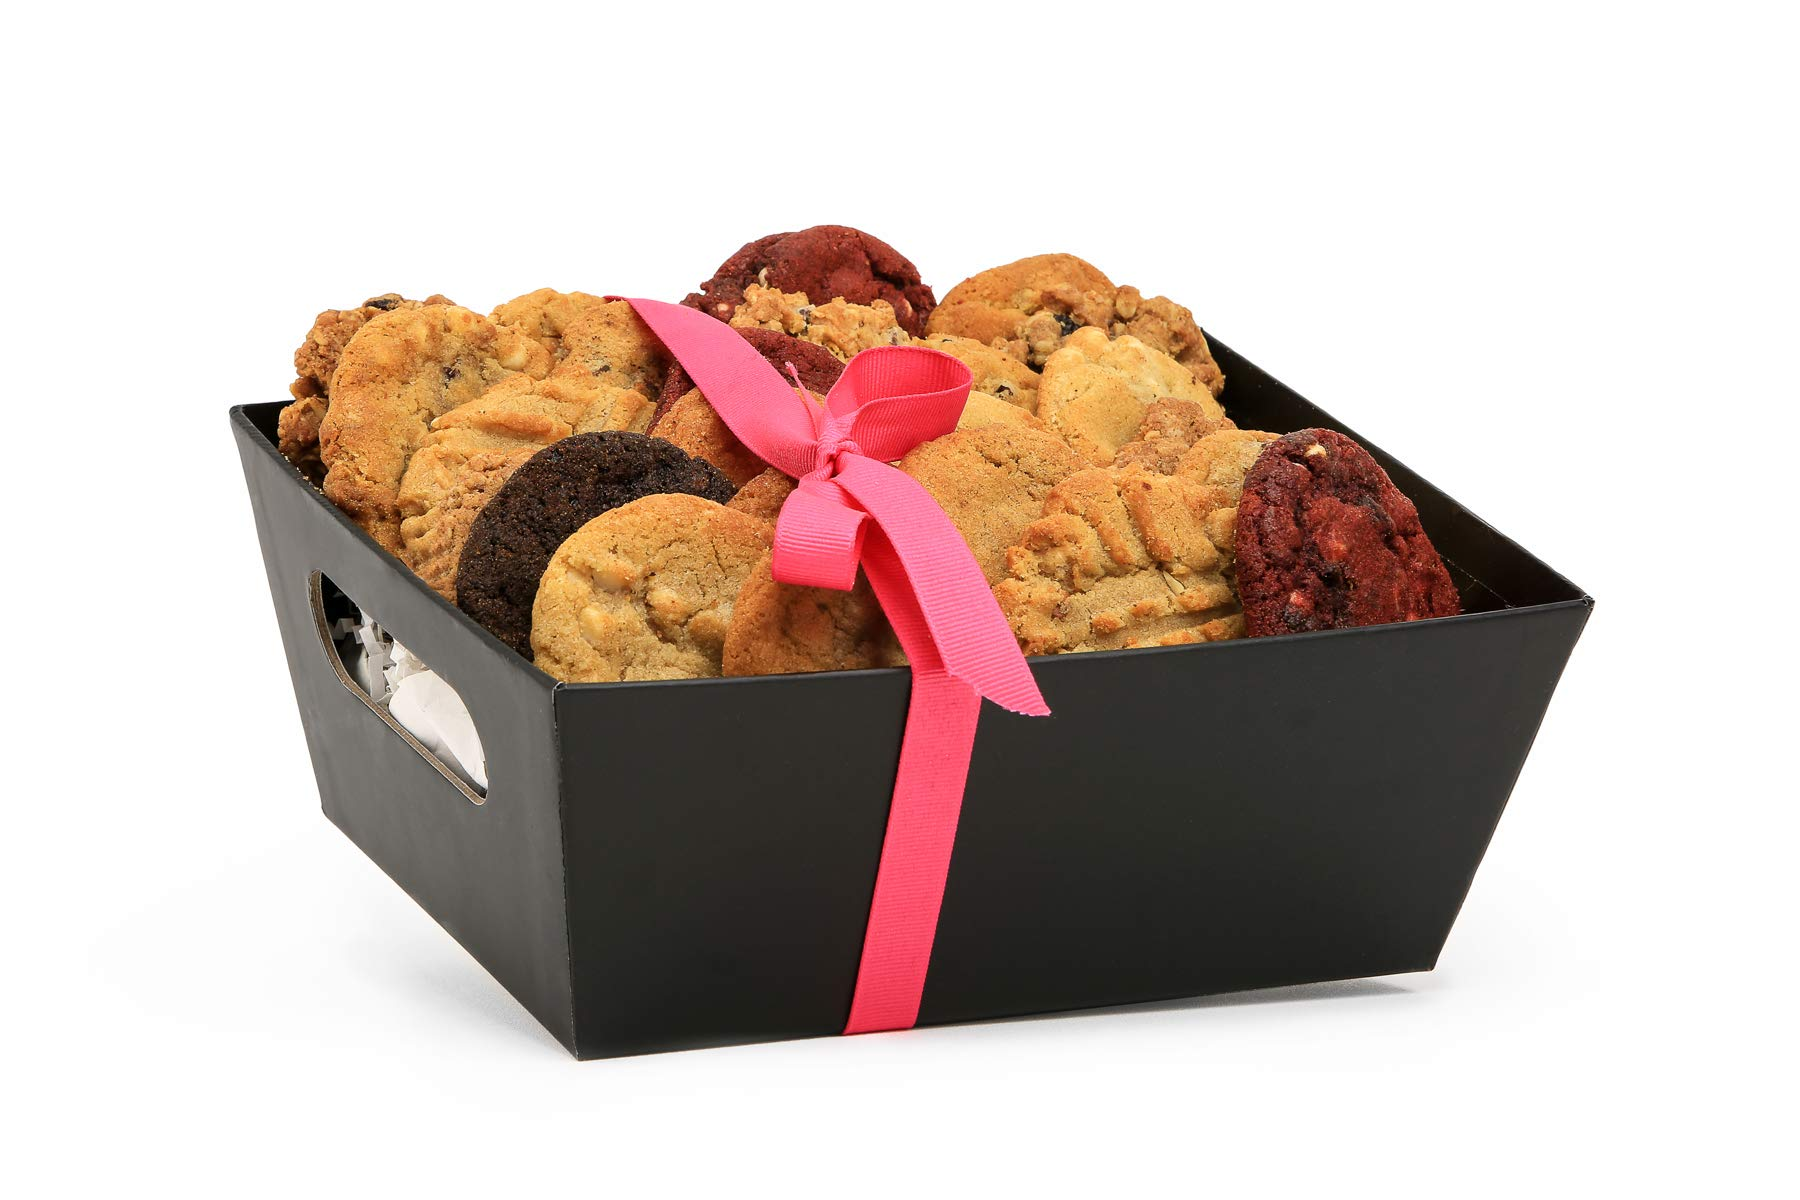 Cookies From Home -''Black Gourmet Tray'' Freshly Hand Baked Gourmet Cookies - 90 Gluten Free Cookies by Cookies From Home